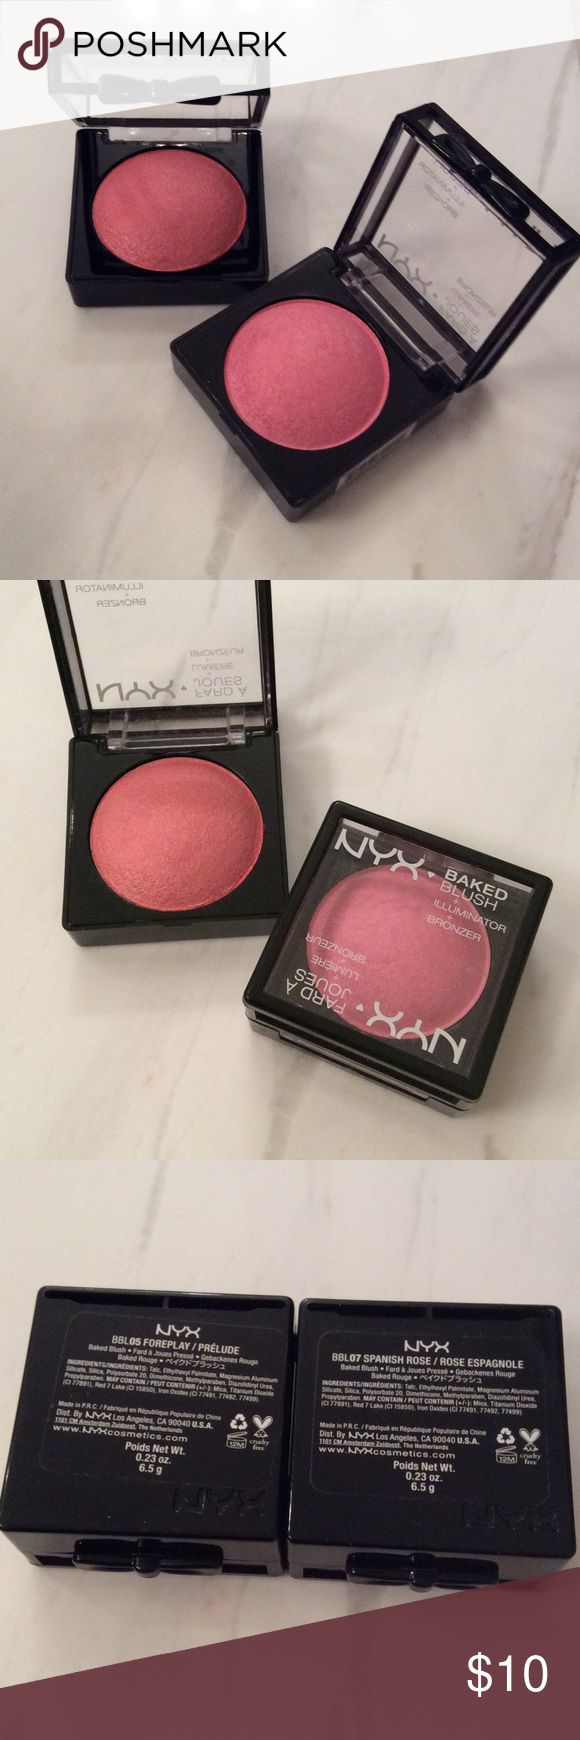 NYX Baked Blush Duo Two baked blushes in one convenient duo from NYX. Gives great color and luminosity to the skin without looking shimmery. Swatched, never worn. No box. NYX Makeup Blush